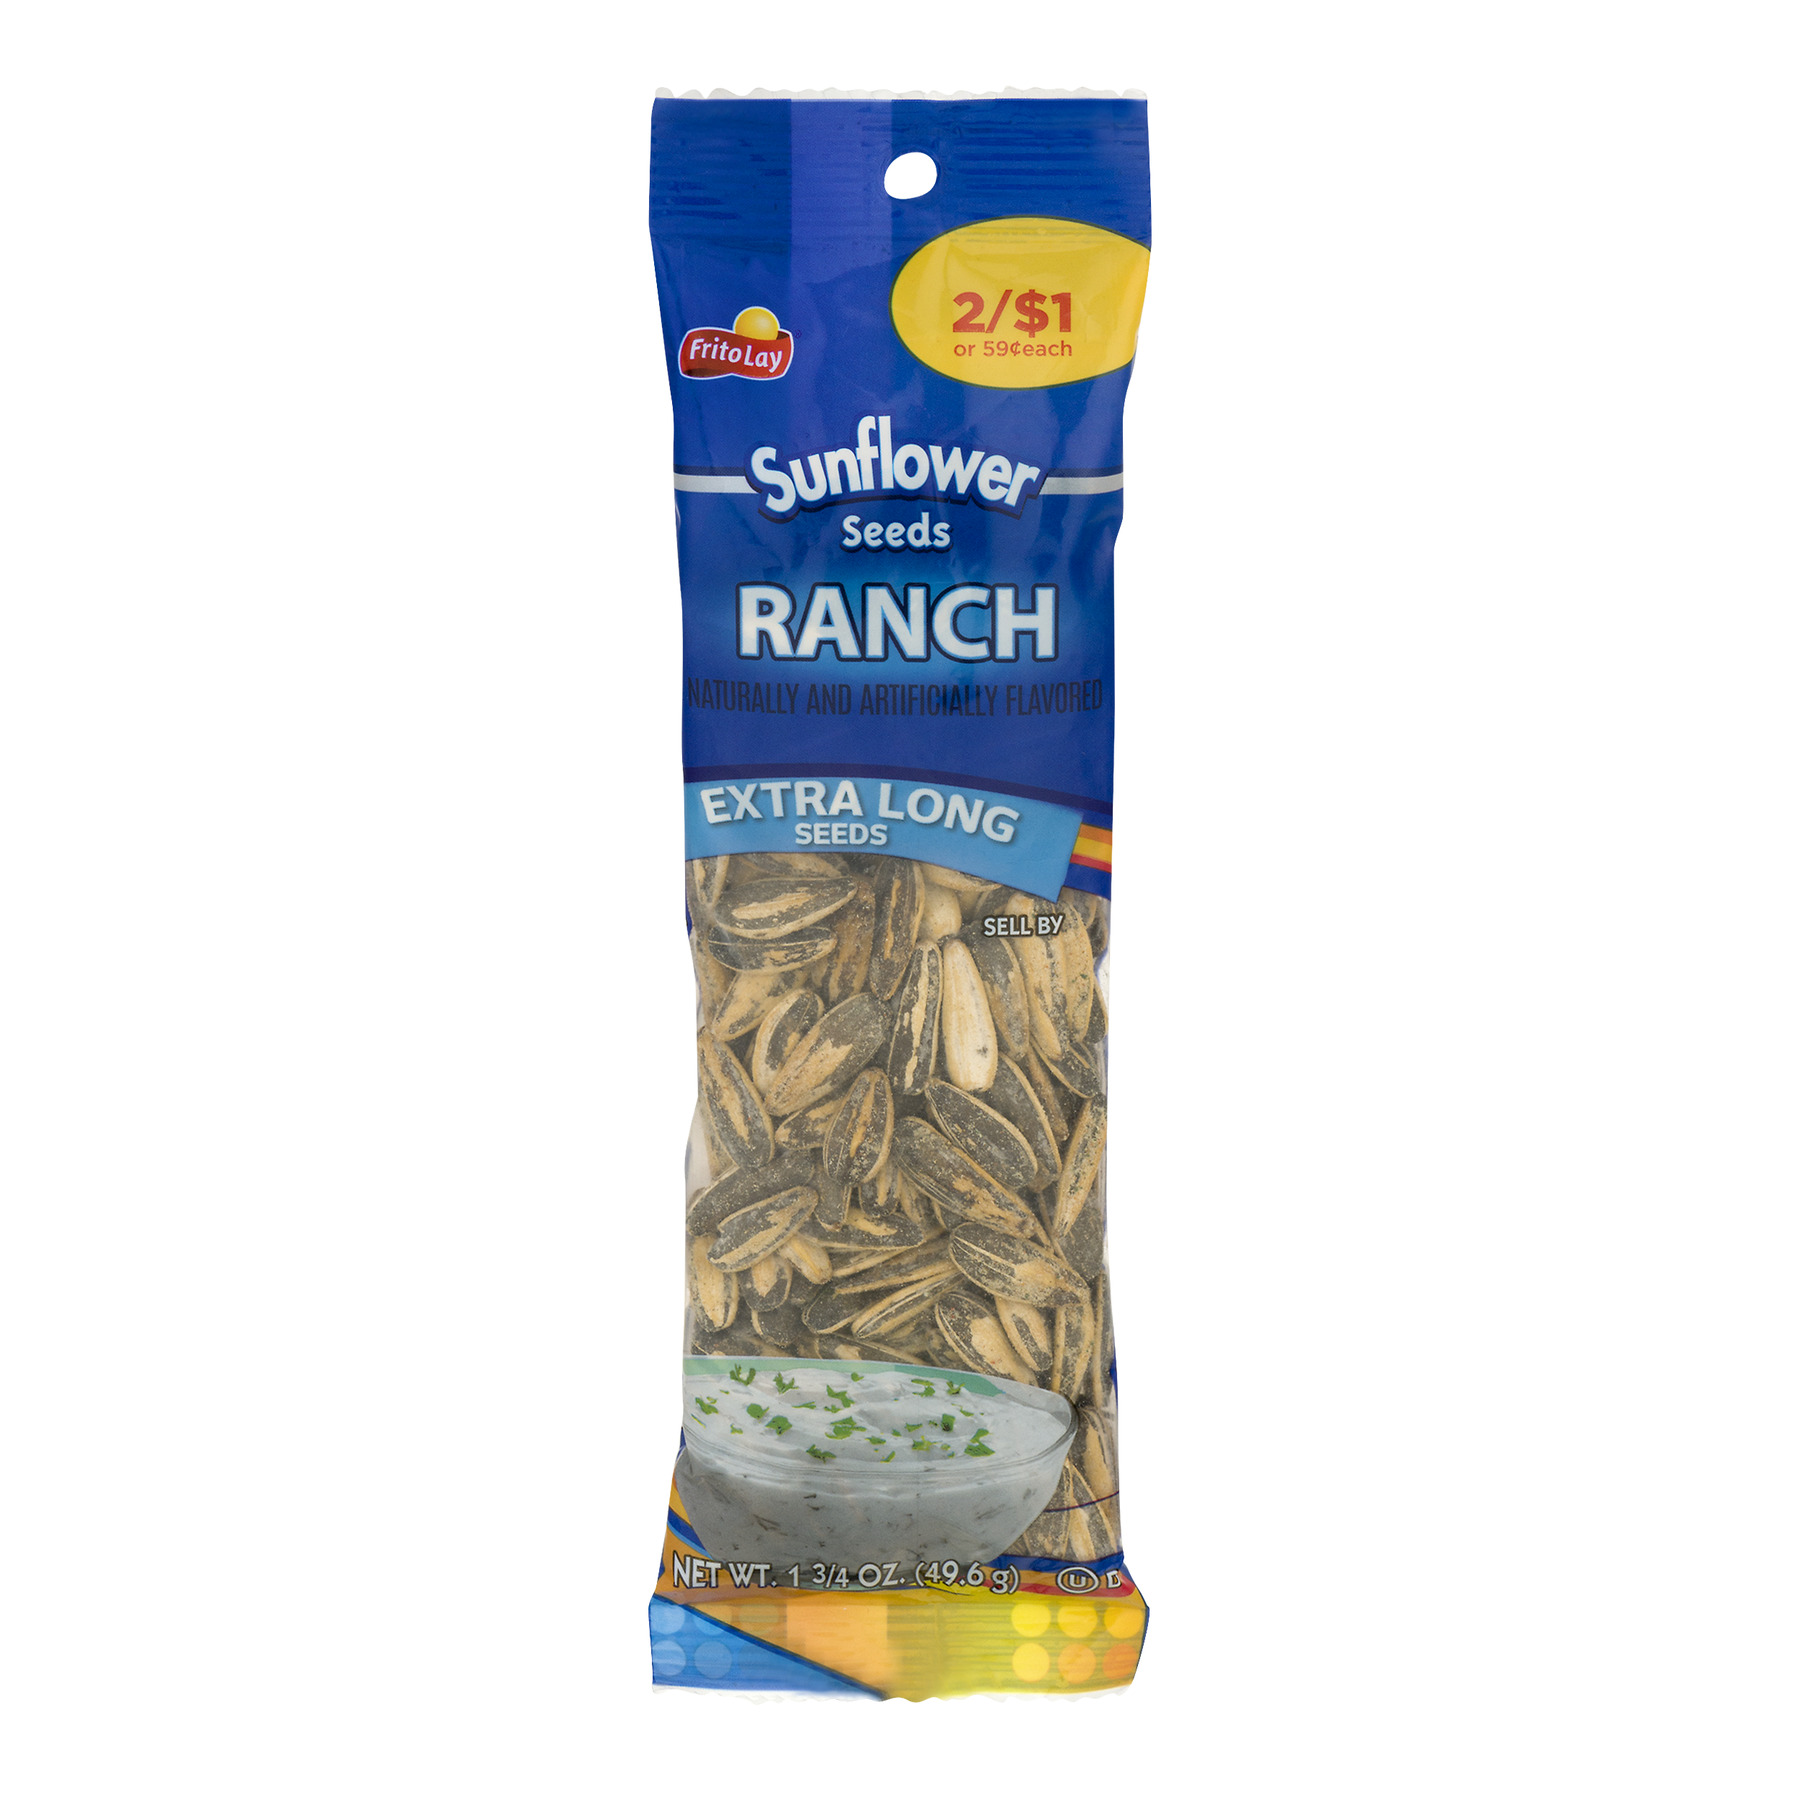 Frito-Lay Sunflower Seeds Ranch Extra Long Seeds, 1.75 OZ